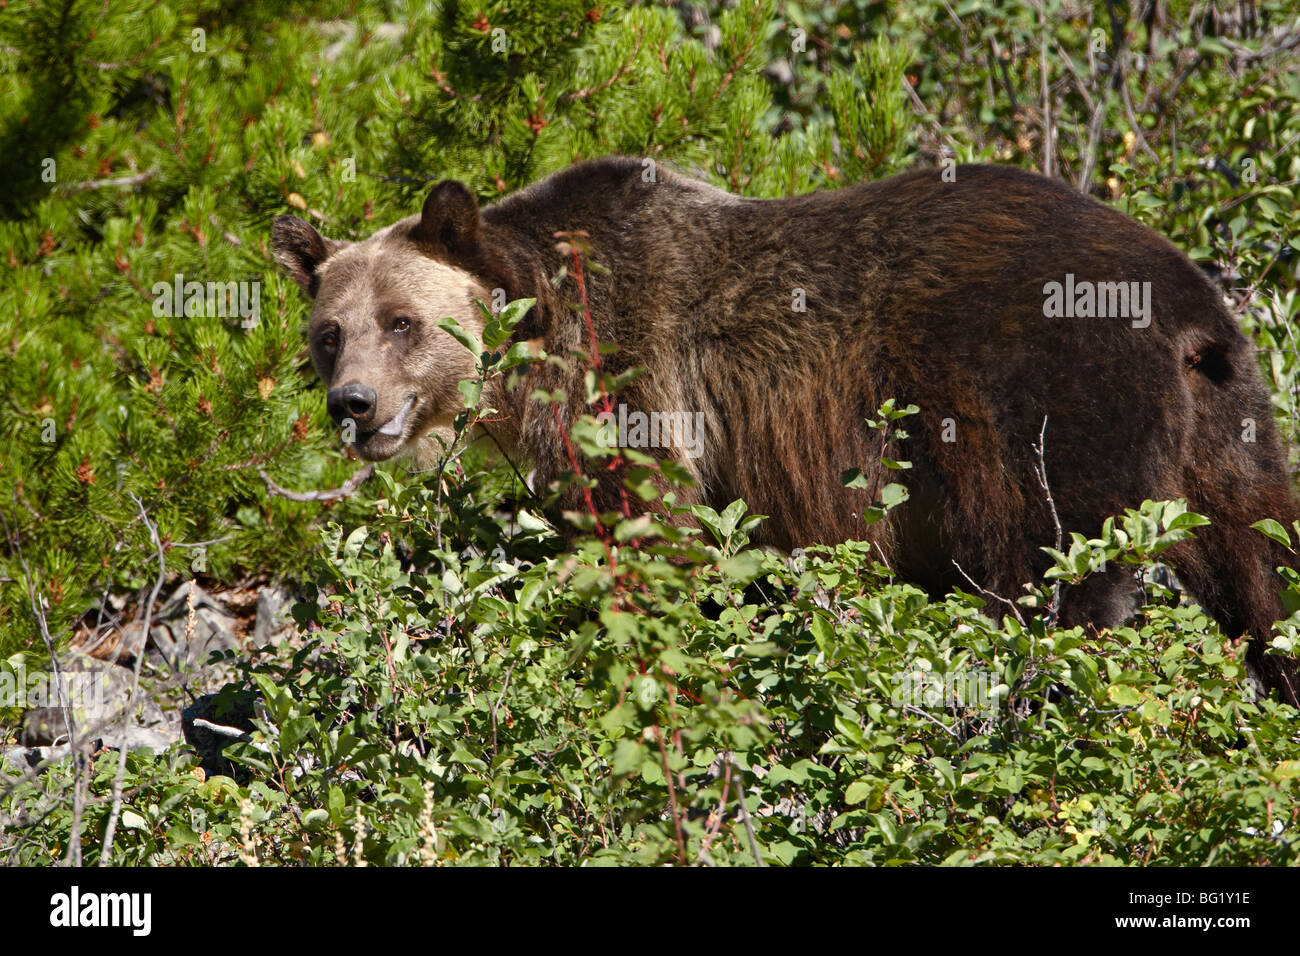 Grizzly bear (Ursus horribilis), Glacier National Park, Montana, United States of America, North America - Stock Image